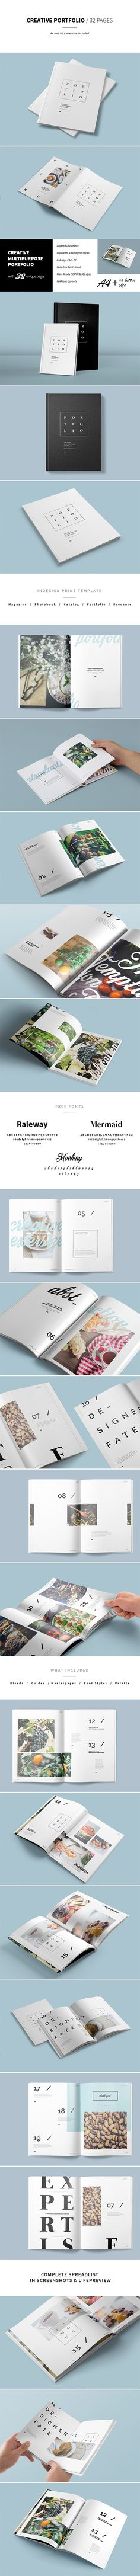 Image-based portfolio. Can be used as a magazine, brochure, catalog or photo album. Booklet, brochure, catalog, clean, creative, design, editorial, lookbook, mag, magazine, minimal, portfolio, photobook, simple, template